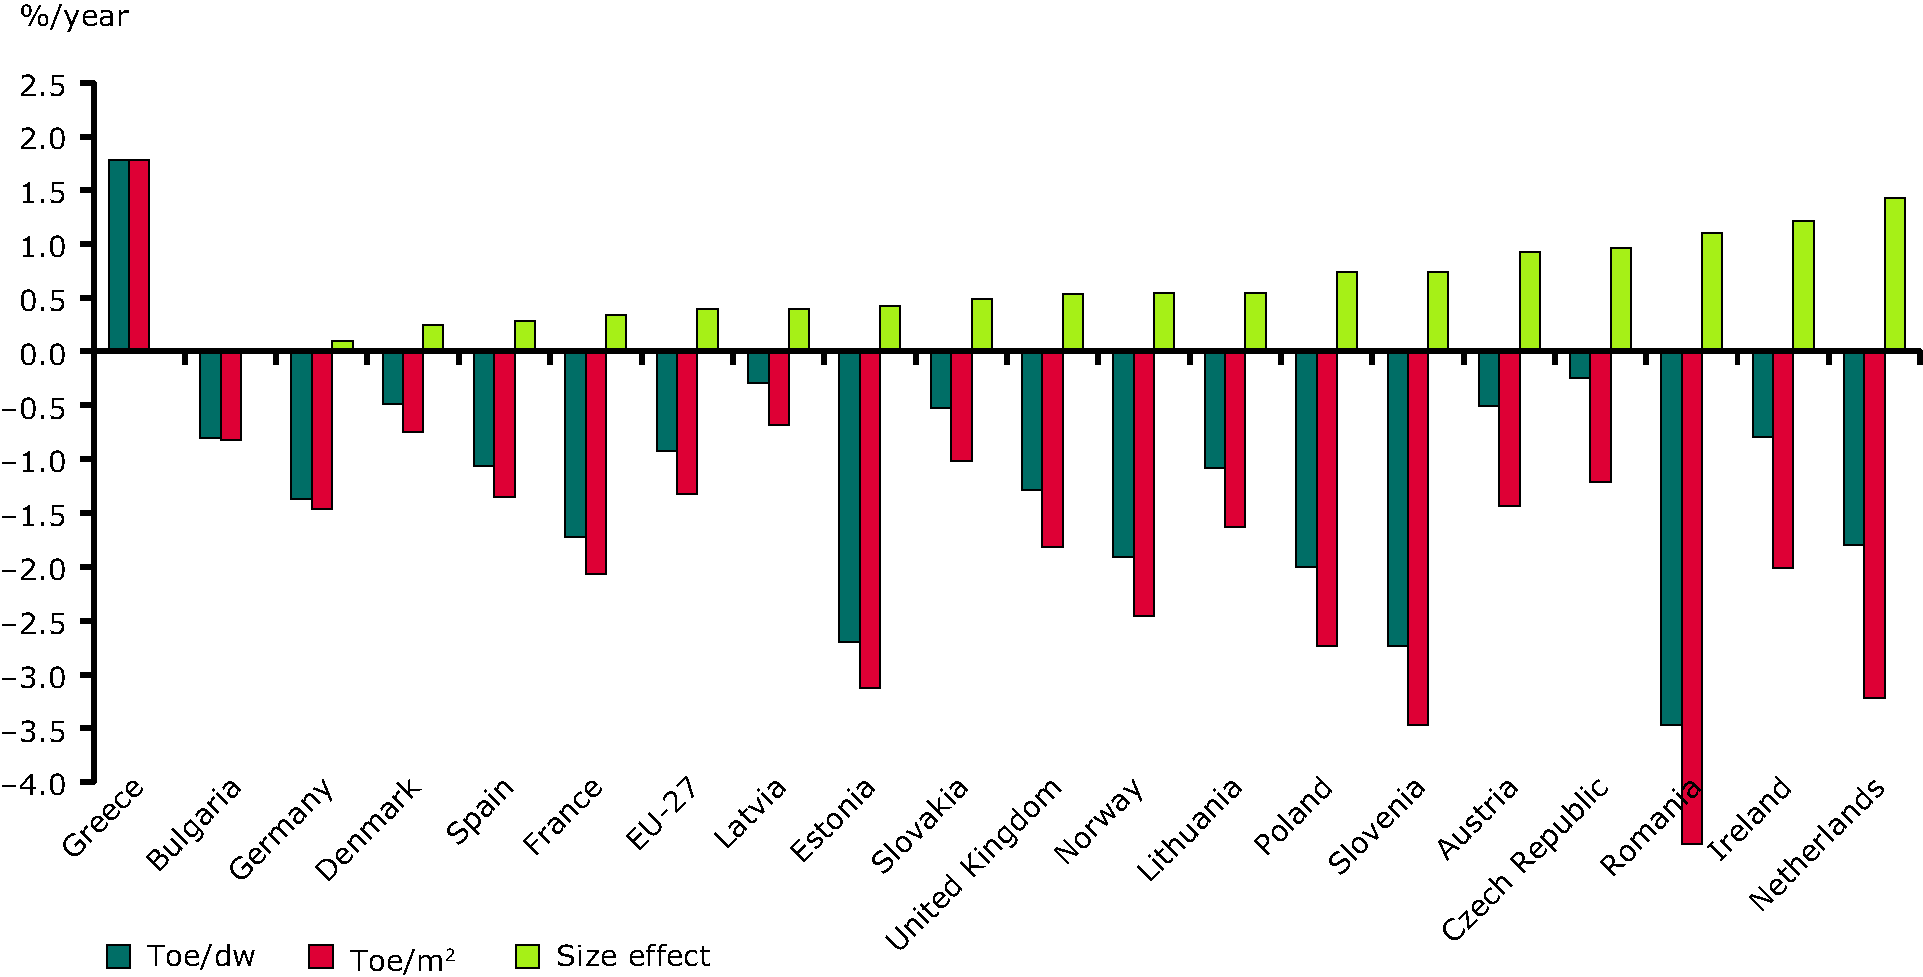 Influence of change in dwelling size on the energy consumption per dwelling (1997–2008)